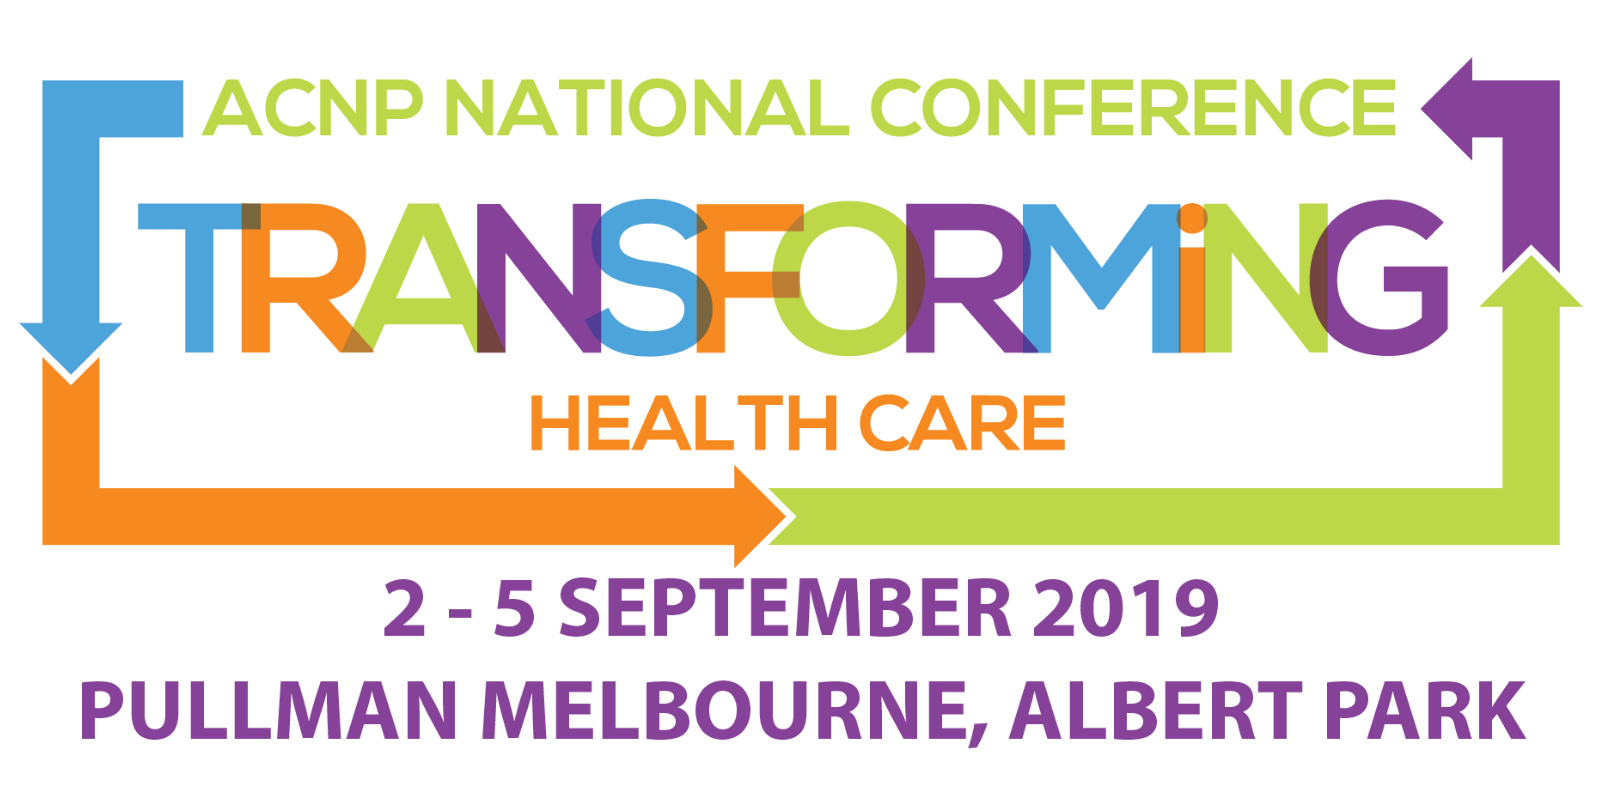 2019 ACNP National Conference - Transforming Health Care: (4 days)